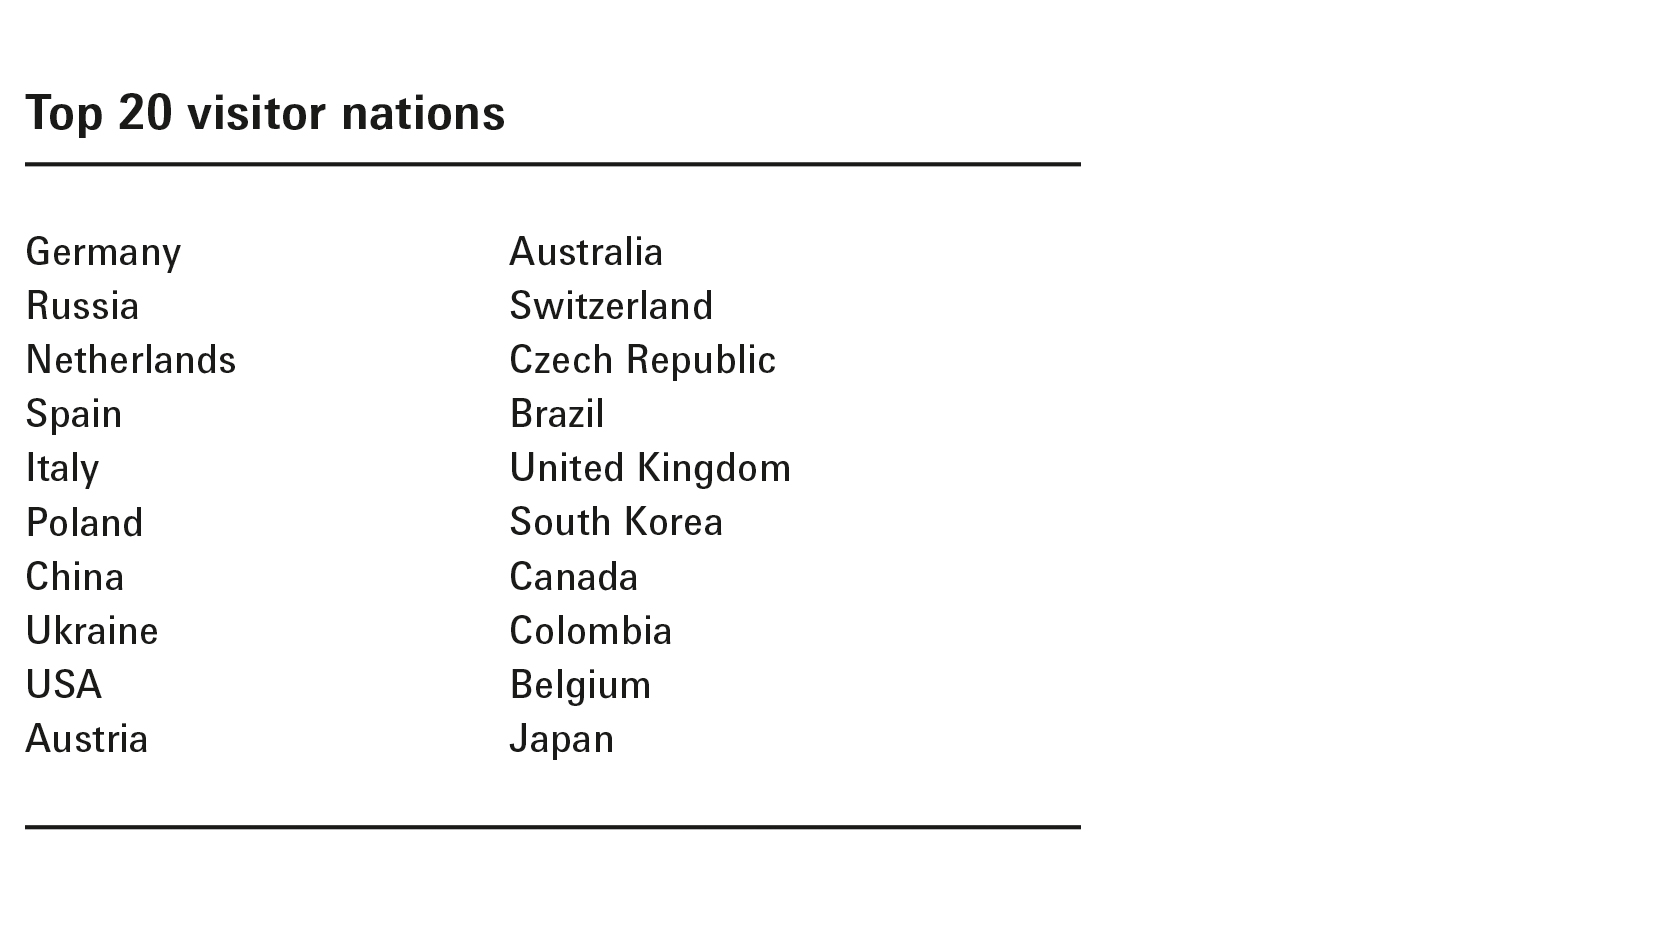 Top 20 visitor nations